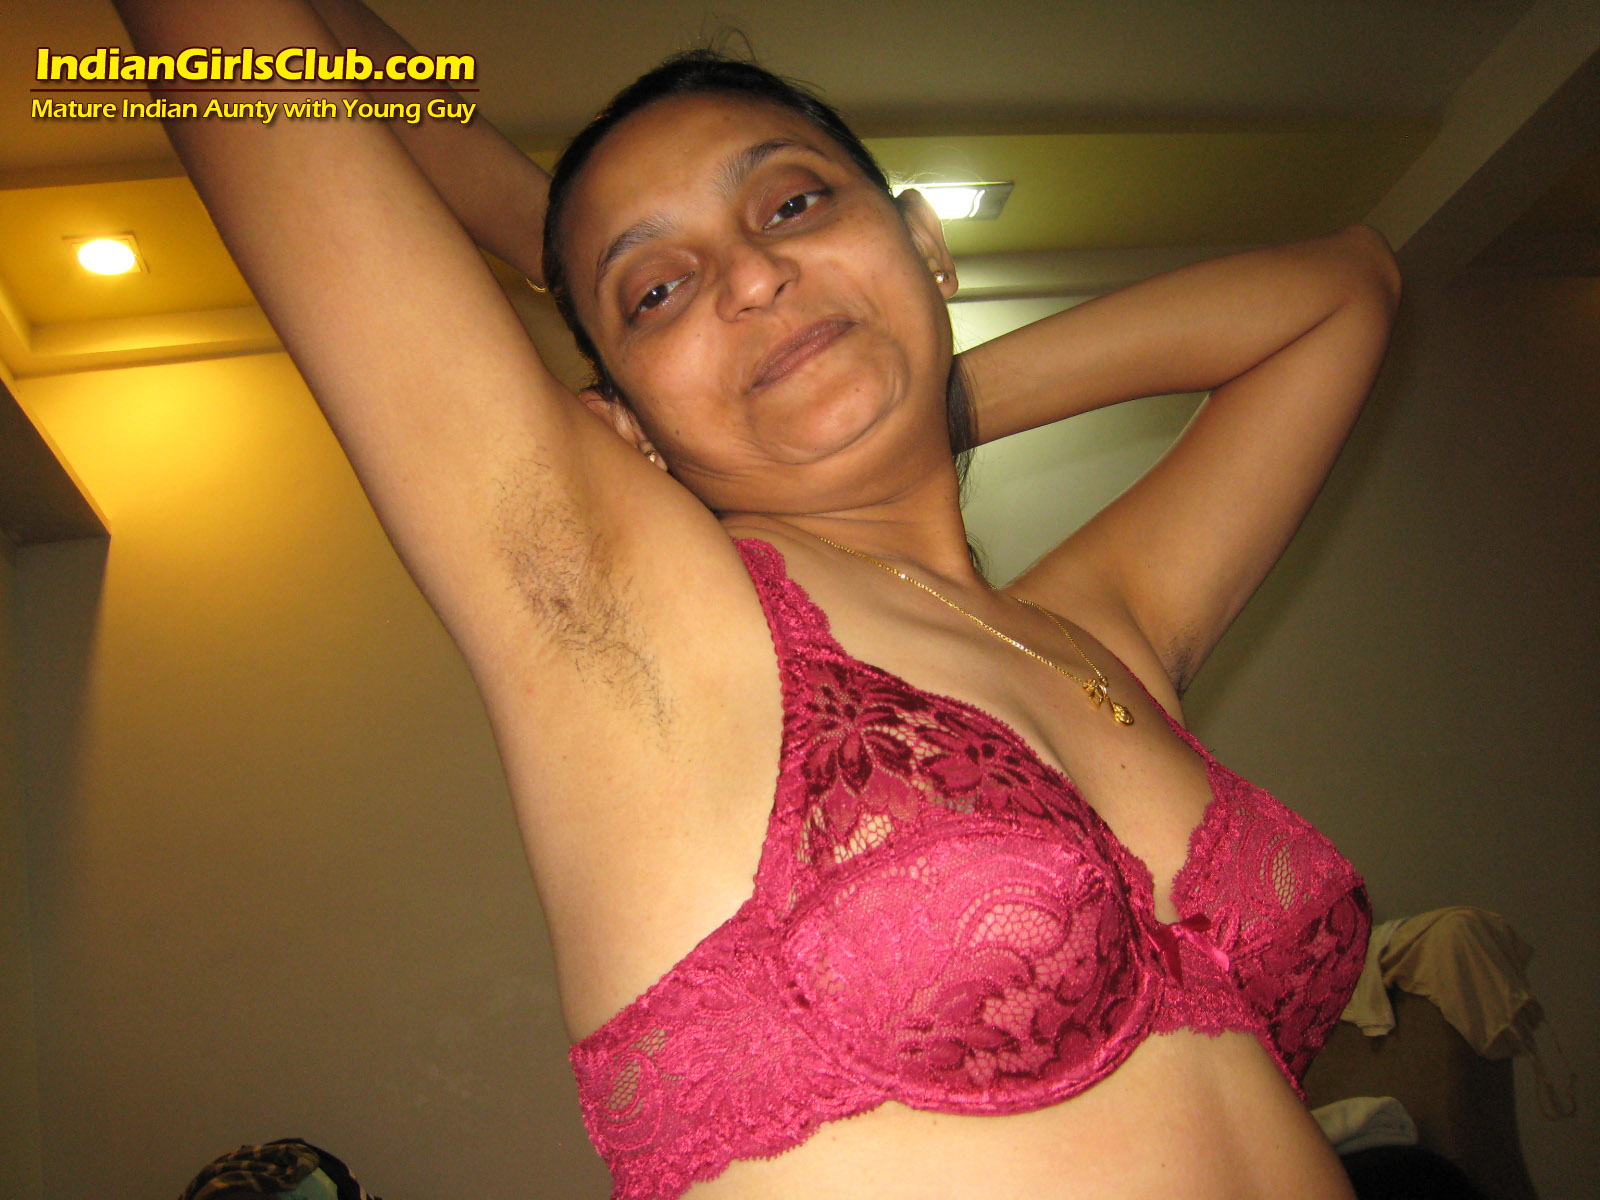 Old black aunty nude in beach photos share